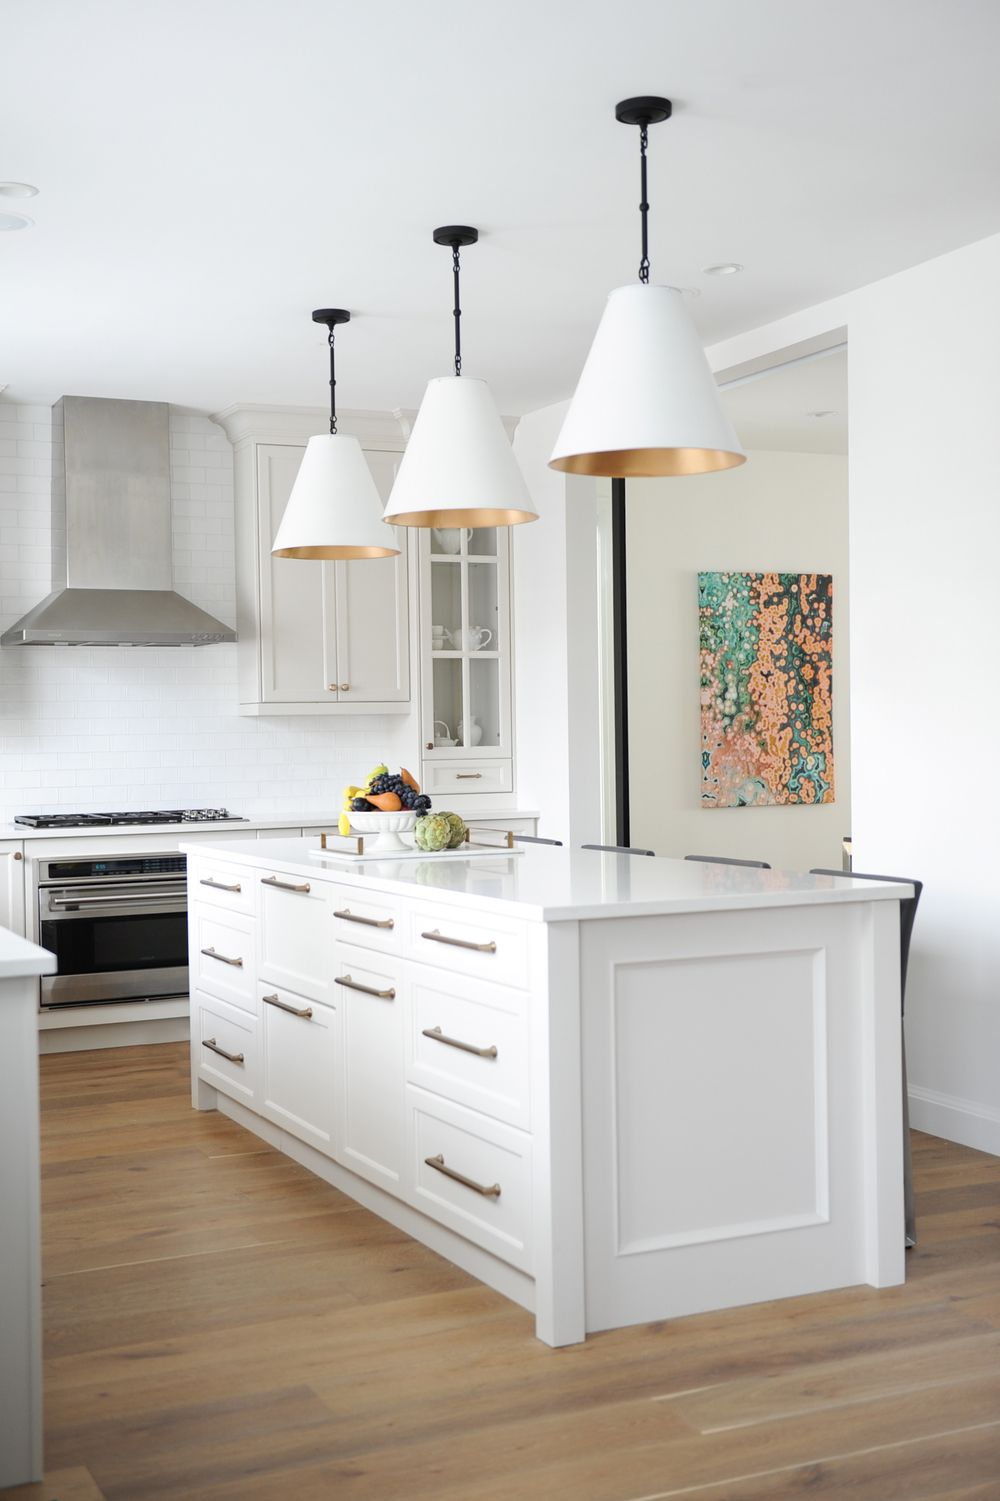 Large kitchen island in light taupe large gold and ivory pendant